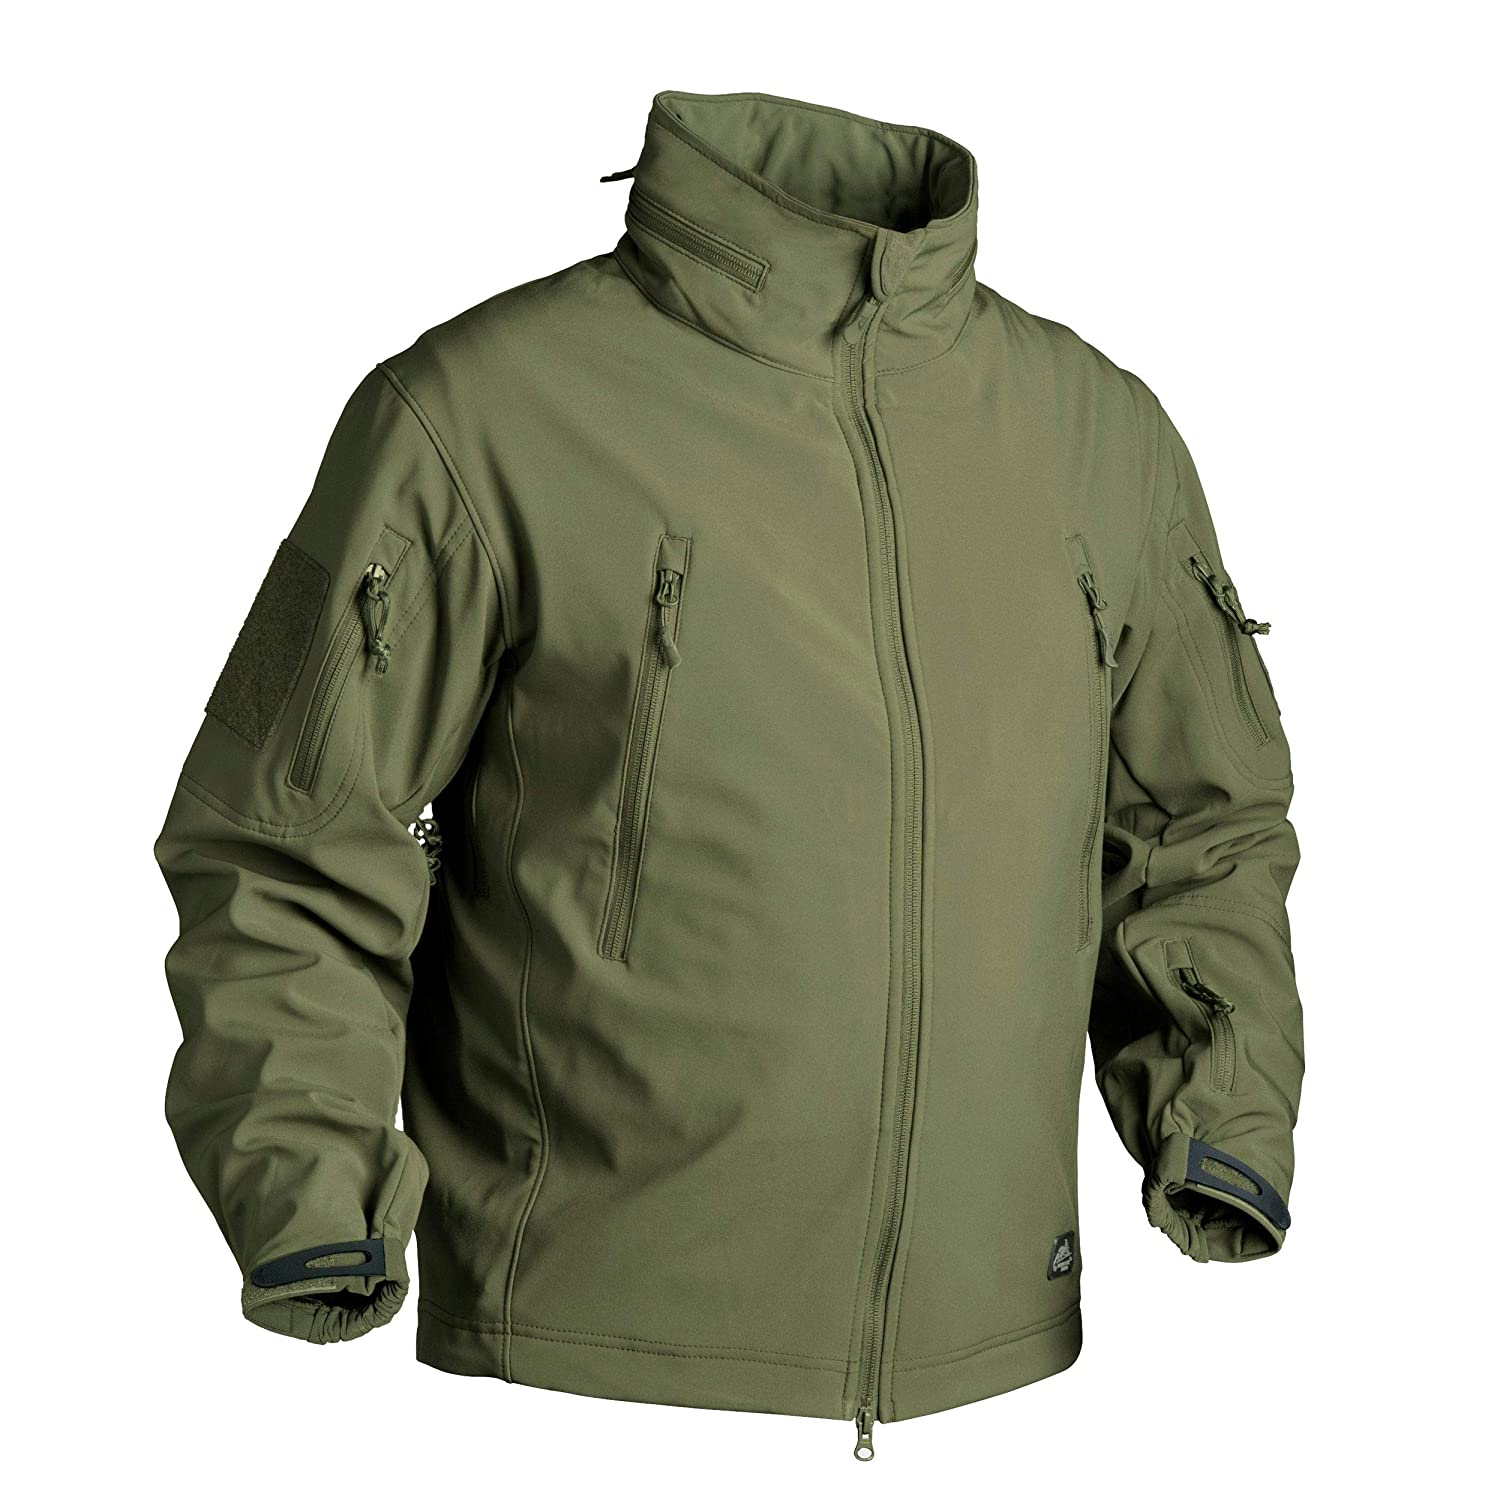 Helikon-Tex Gunfighter Jacke - Shark Skin Windblocker - Olive Grün